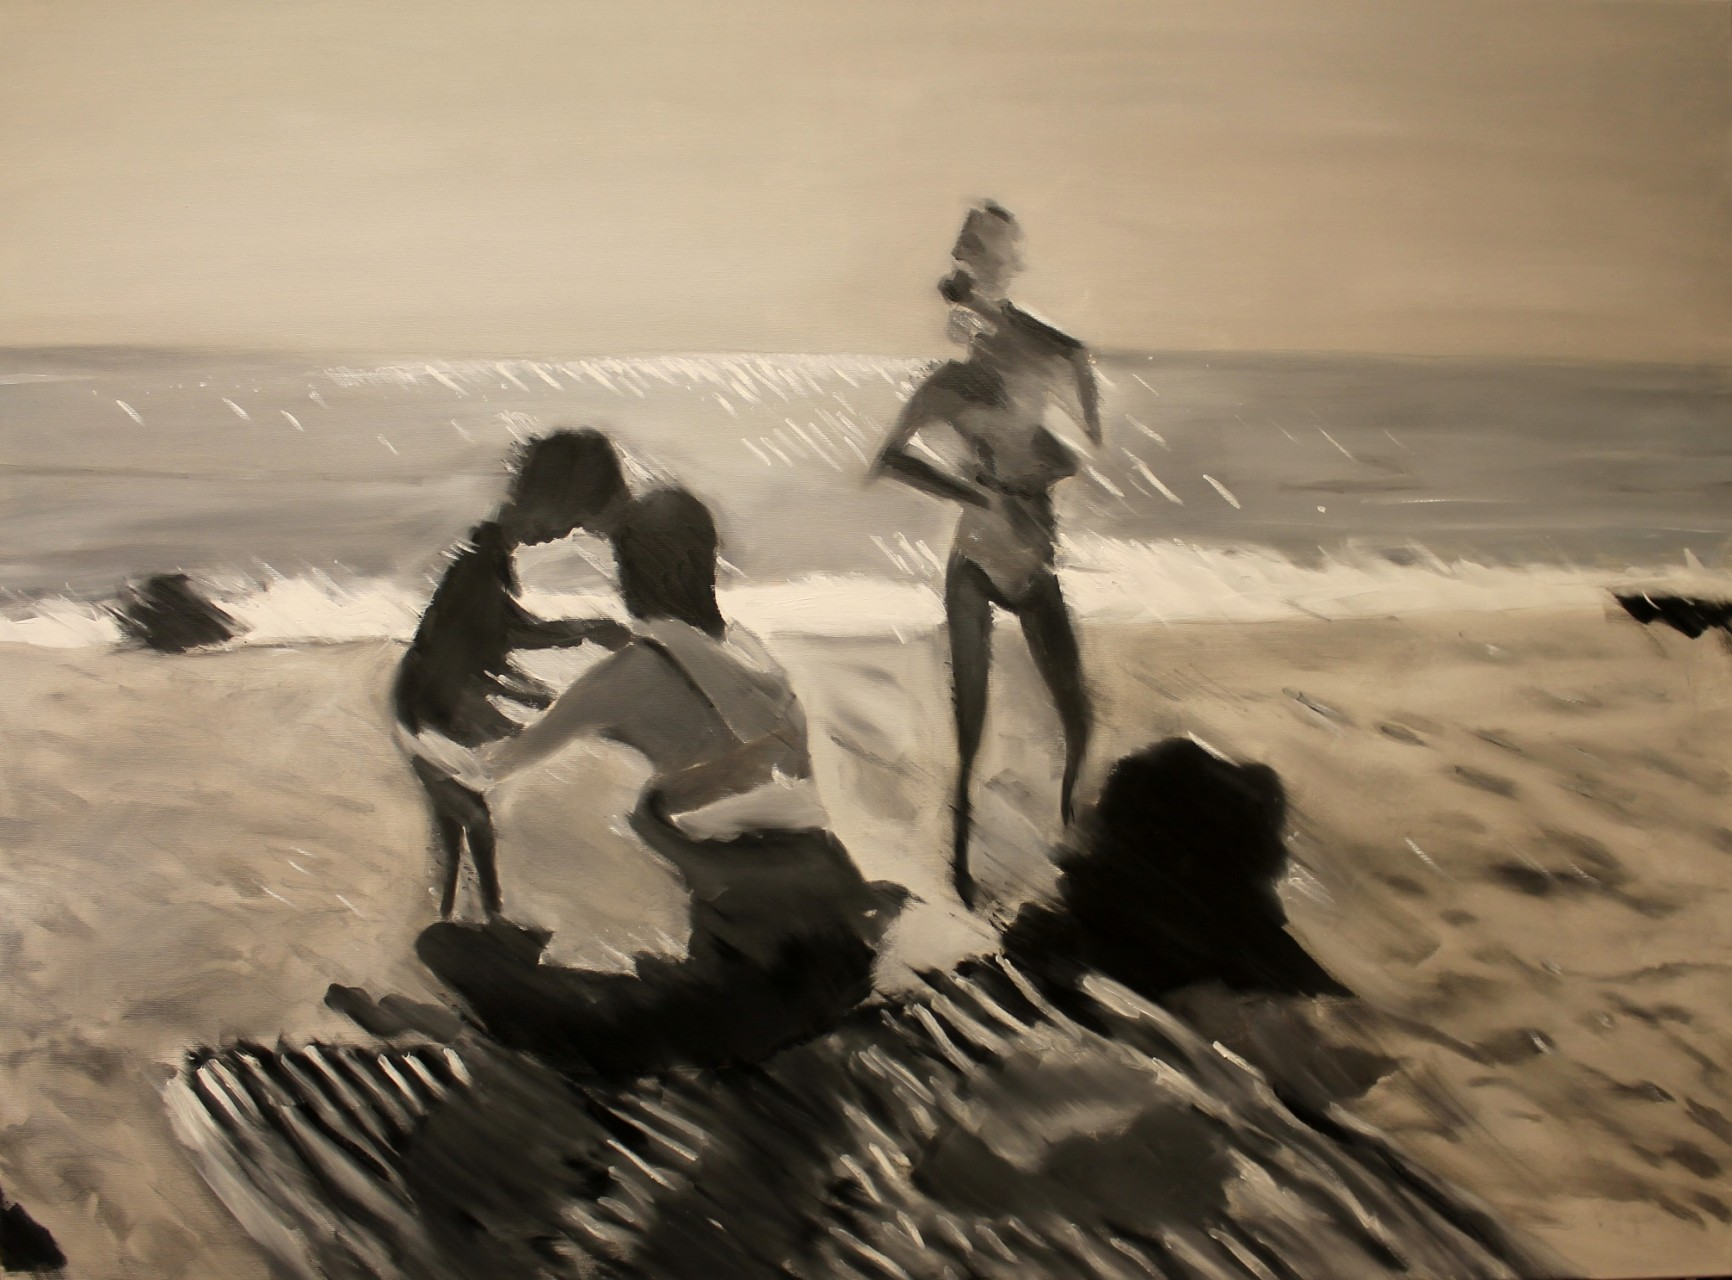 Swakop Family, 2013, oil on canvas, 100 x 140 cm